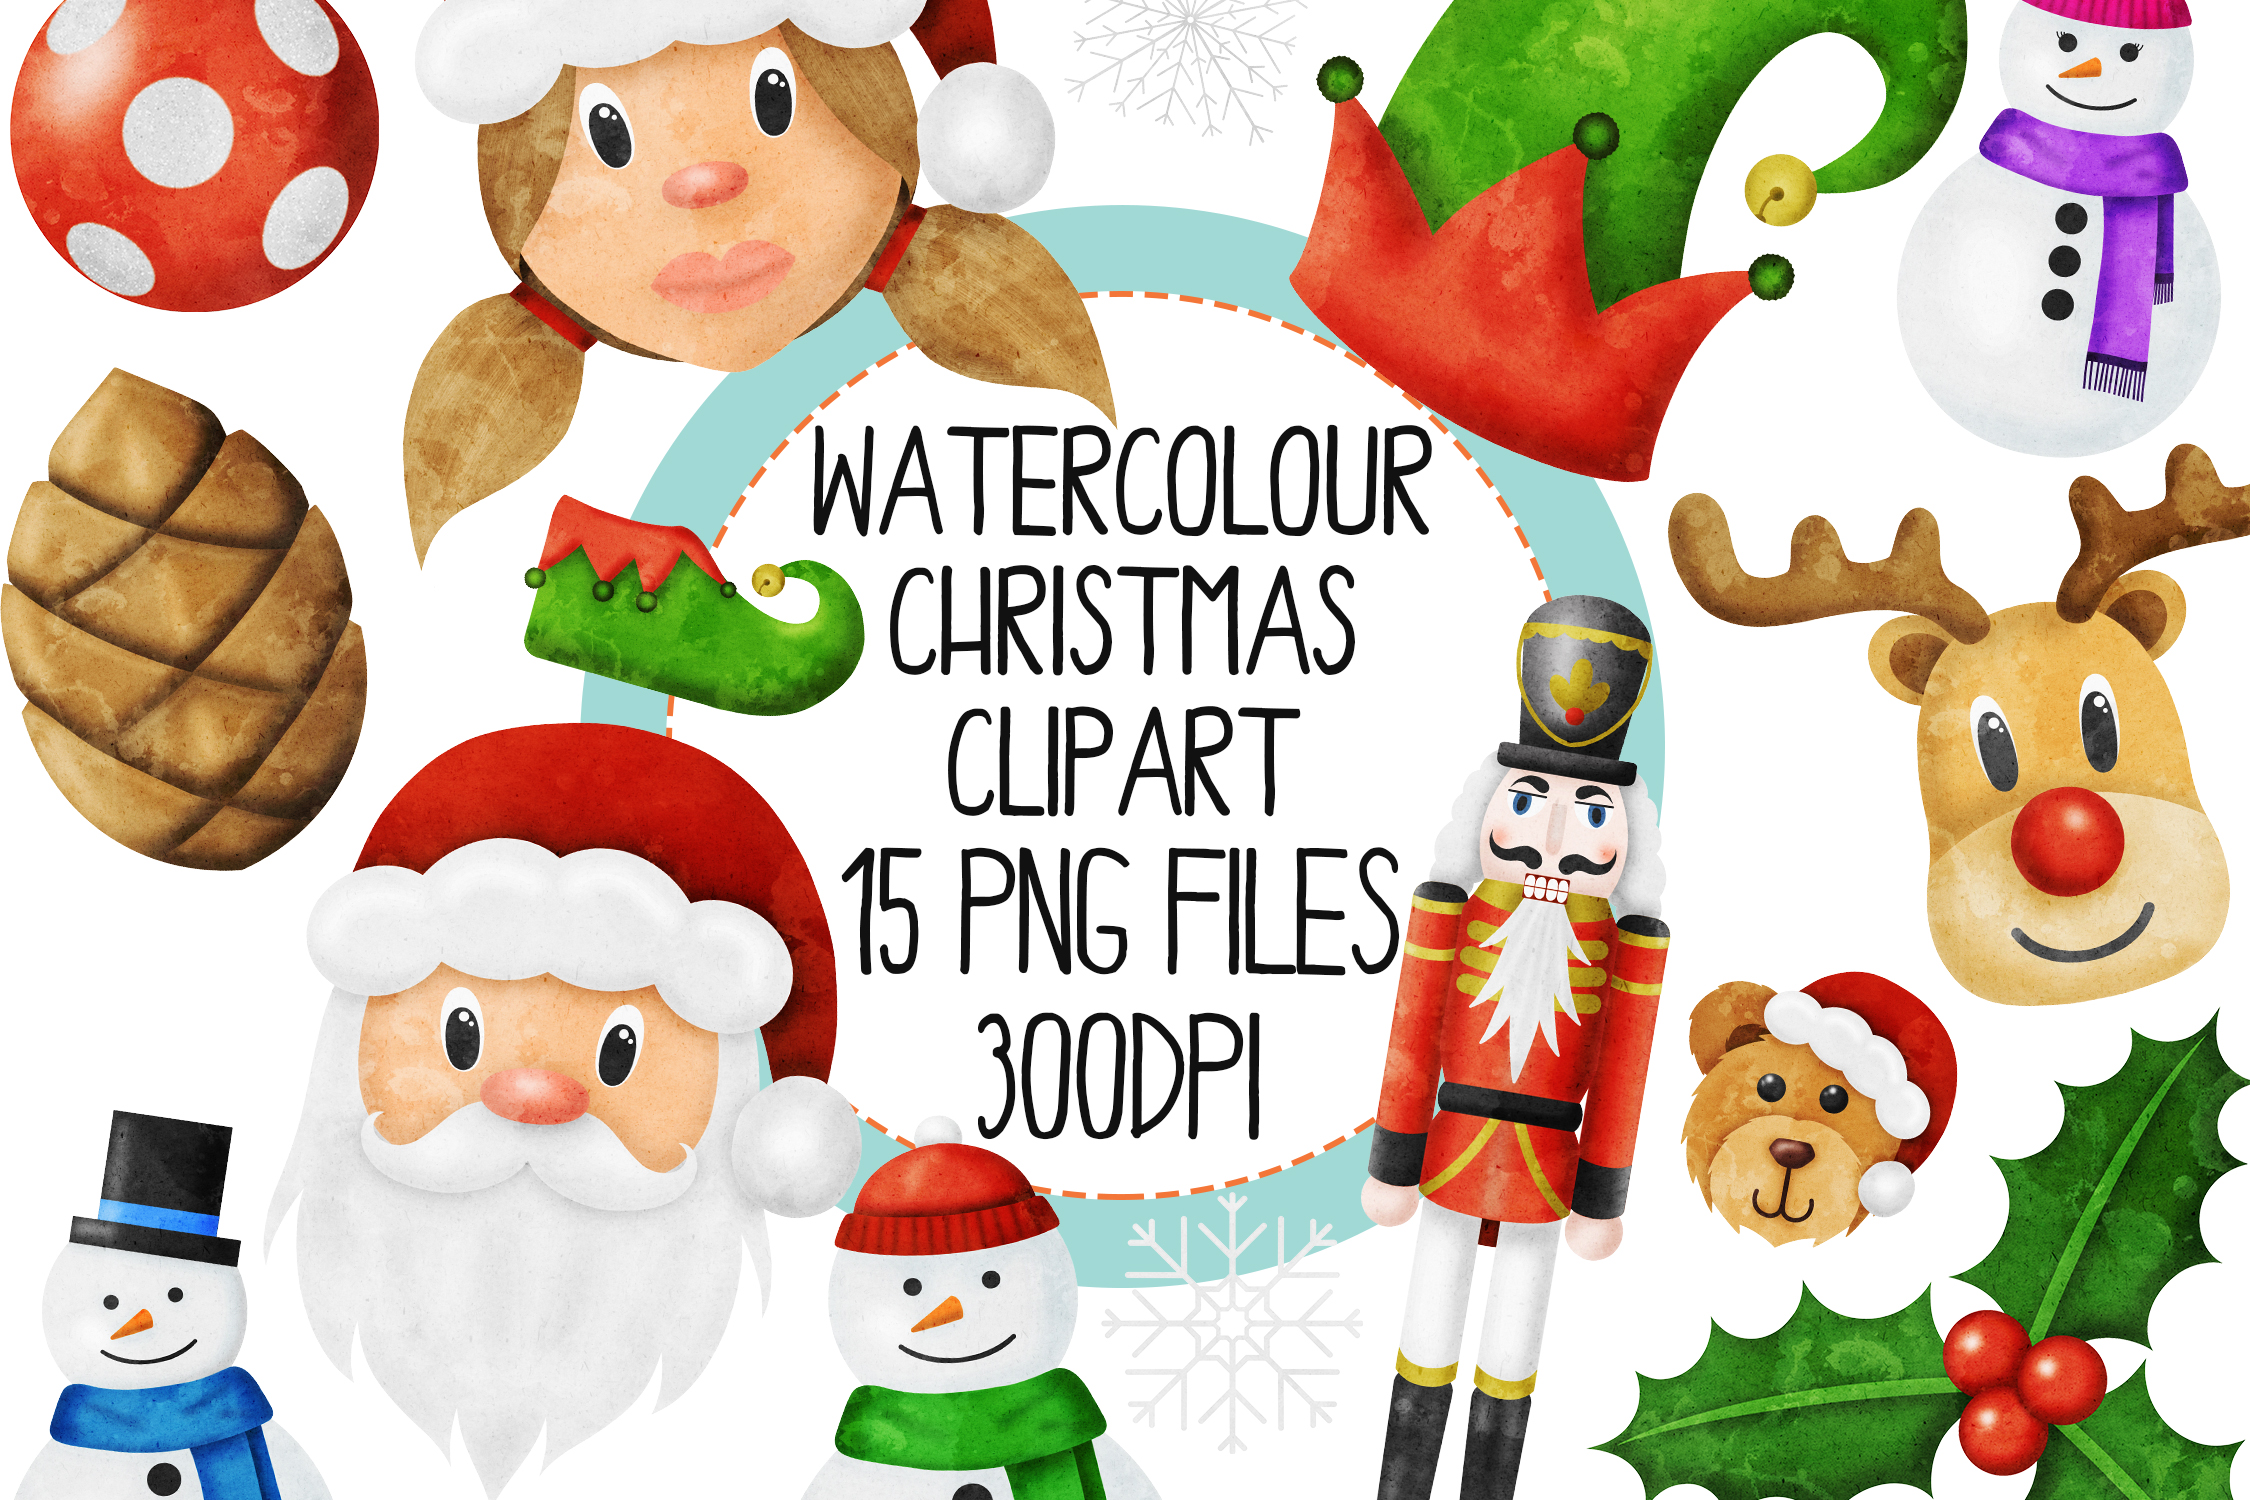 Watercolor Christmas Clipart Set 3 example image 1